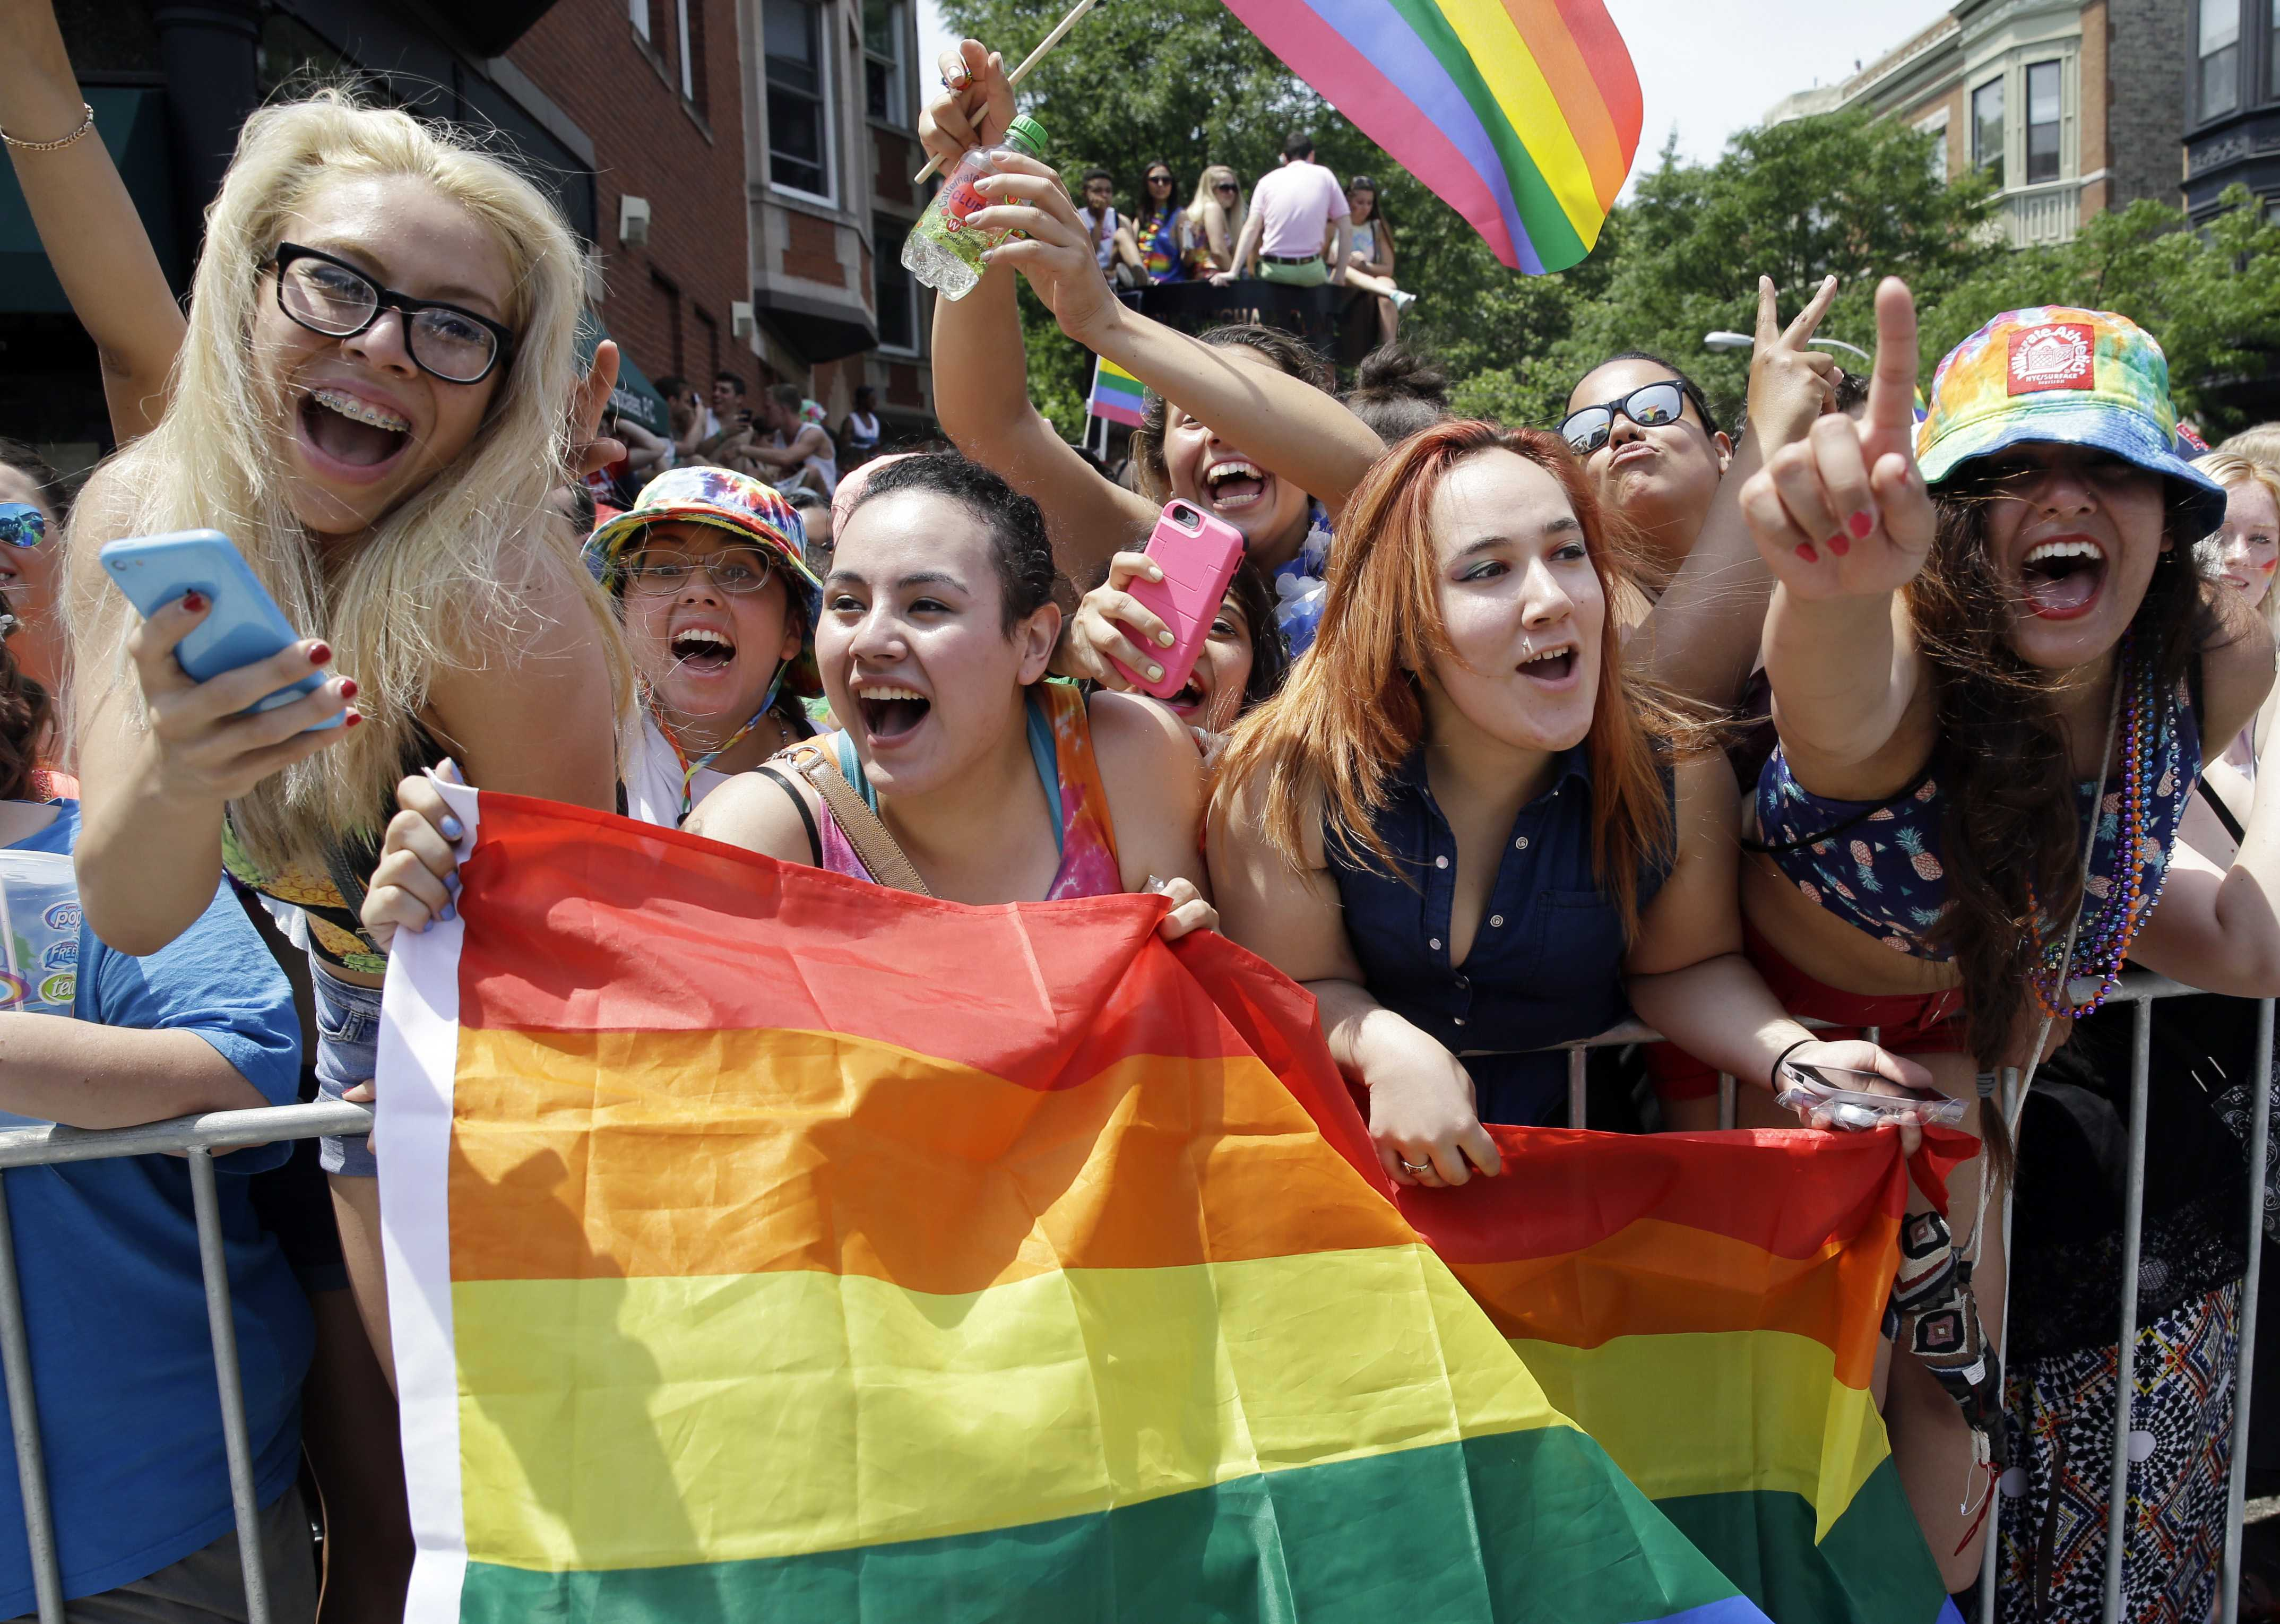 People celebrate at the 46th Annual Chicago Pride Parade, Sunday, June 28, 2015, in Chicago. A large turnout was expected for gay pride parades across the U.S. following the landmark Supreme Court ruling that said gay couples can marry anywhere in the country. (AP Photo/Nam Y. Huh)